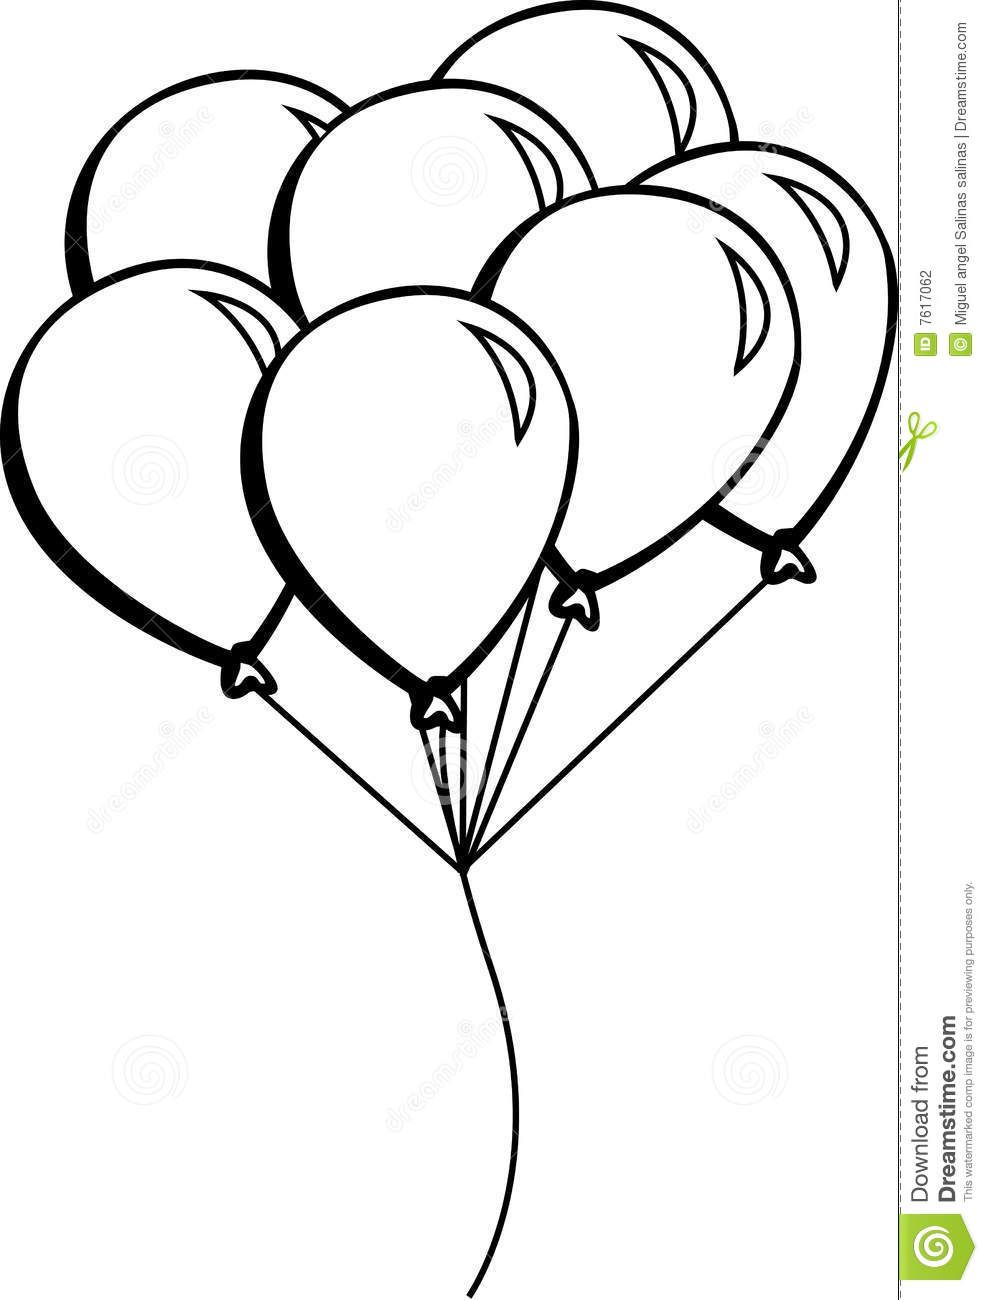 988x1300 Image Result For How To Draw A Bouquet Of Balloons School